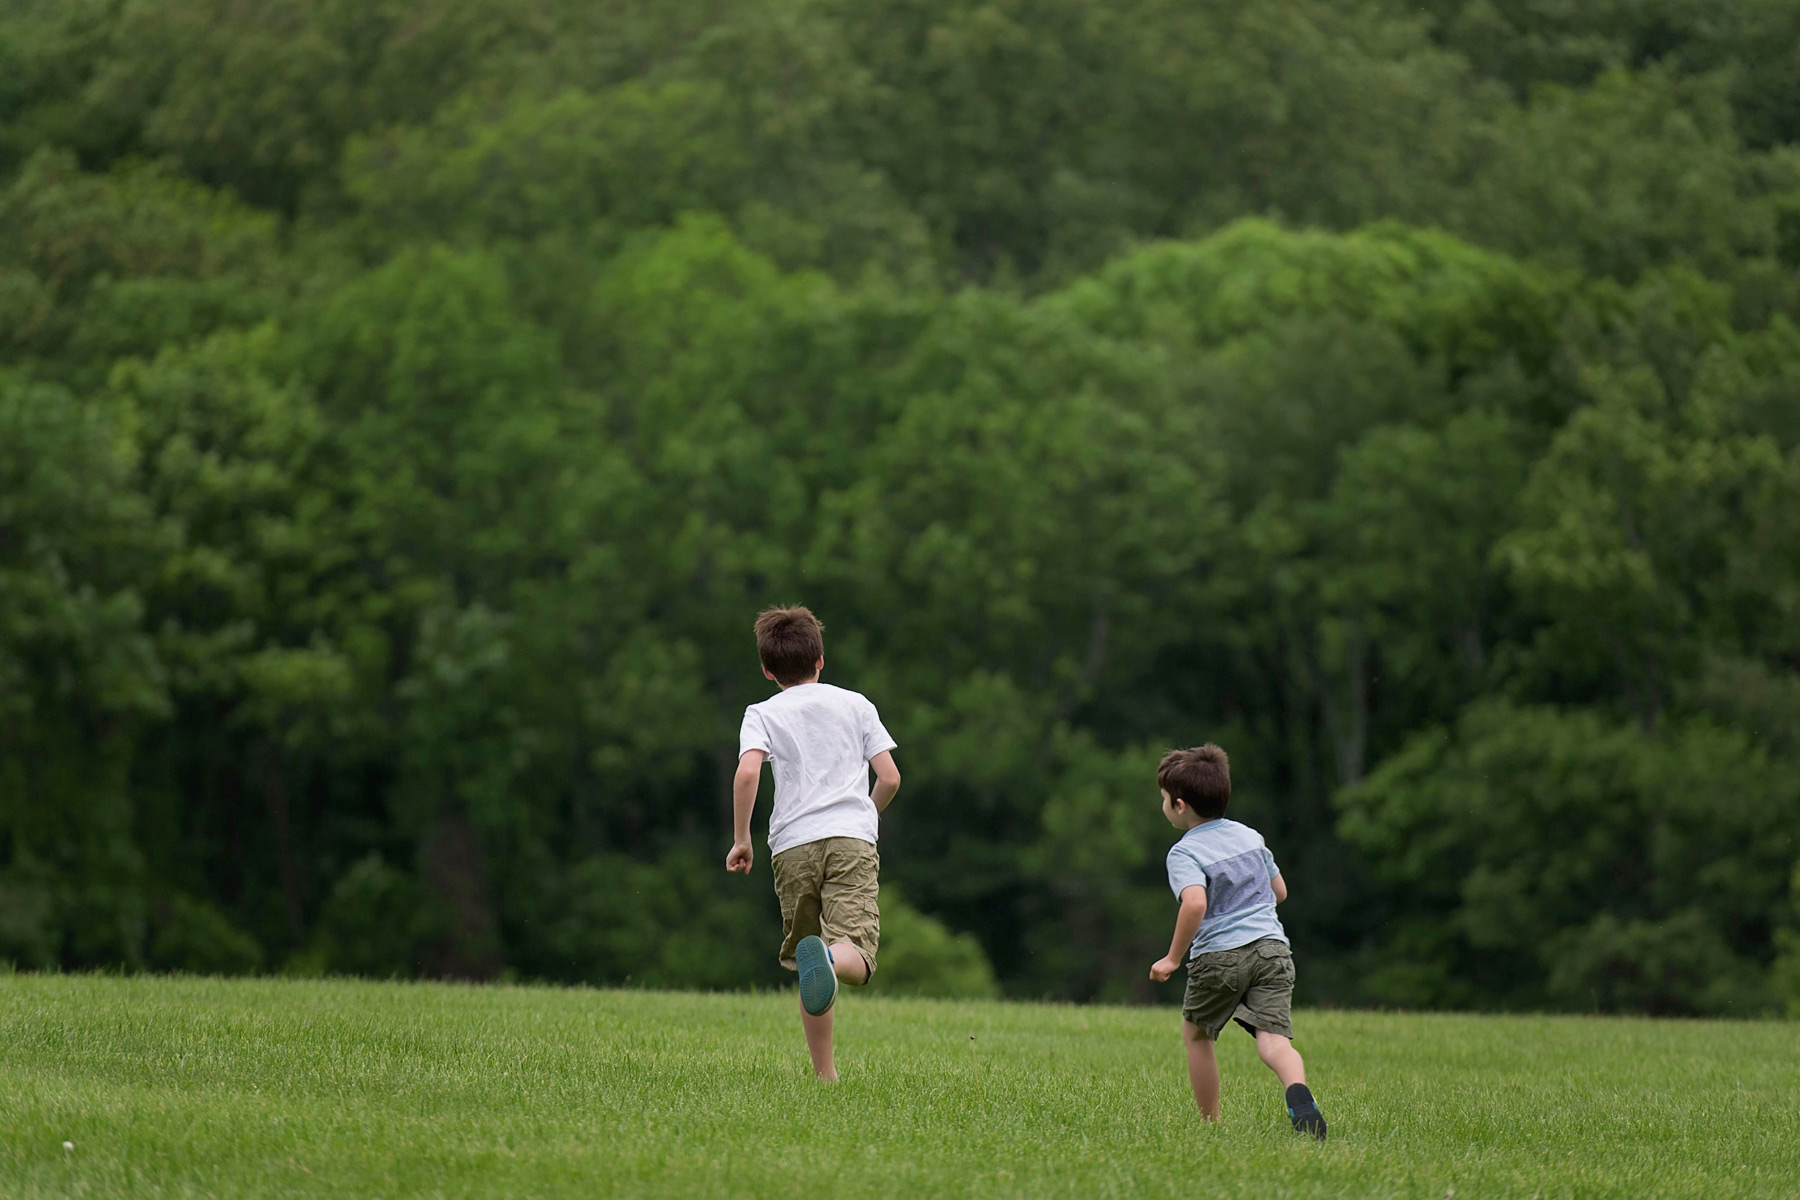 two boys run away from camera into field